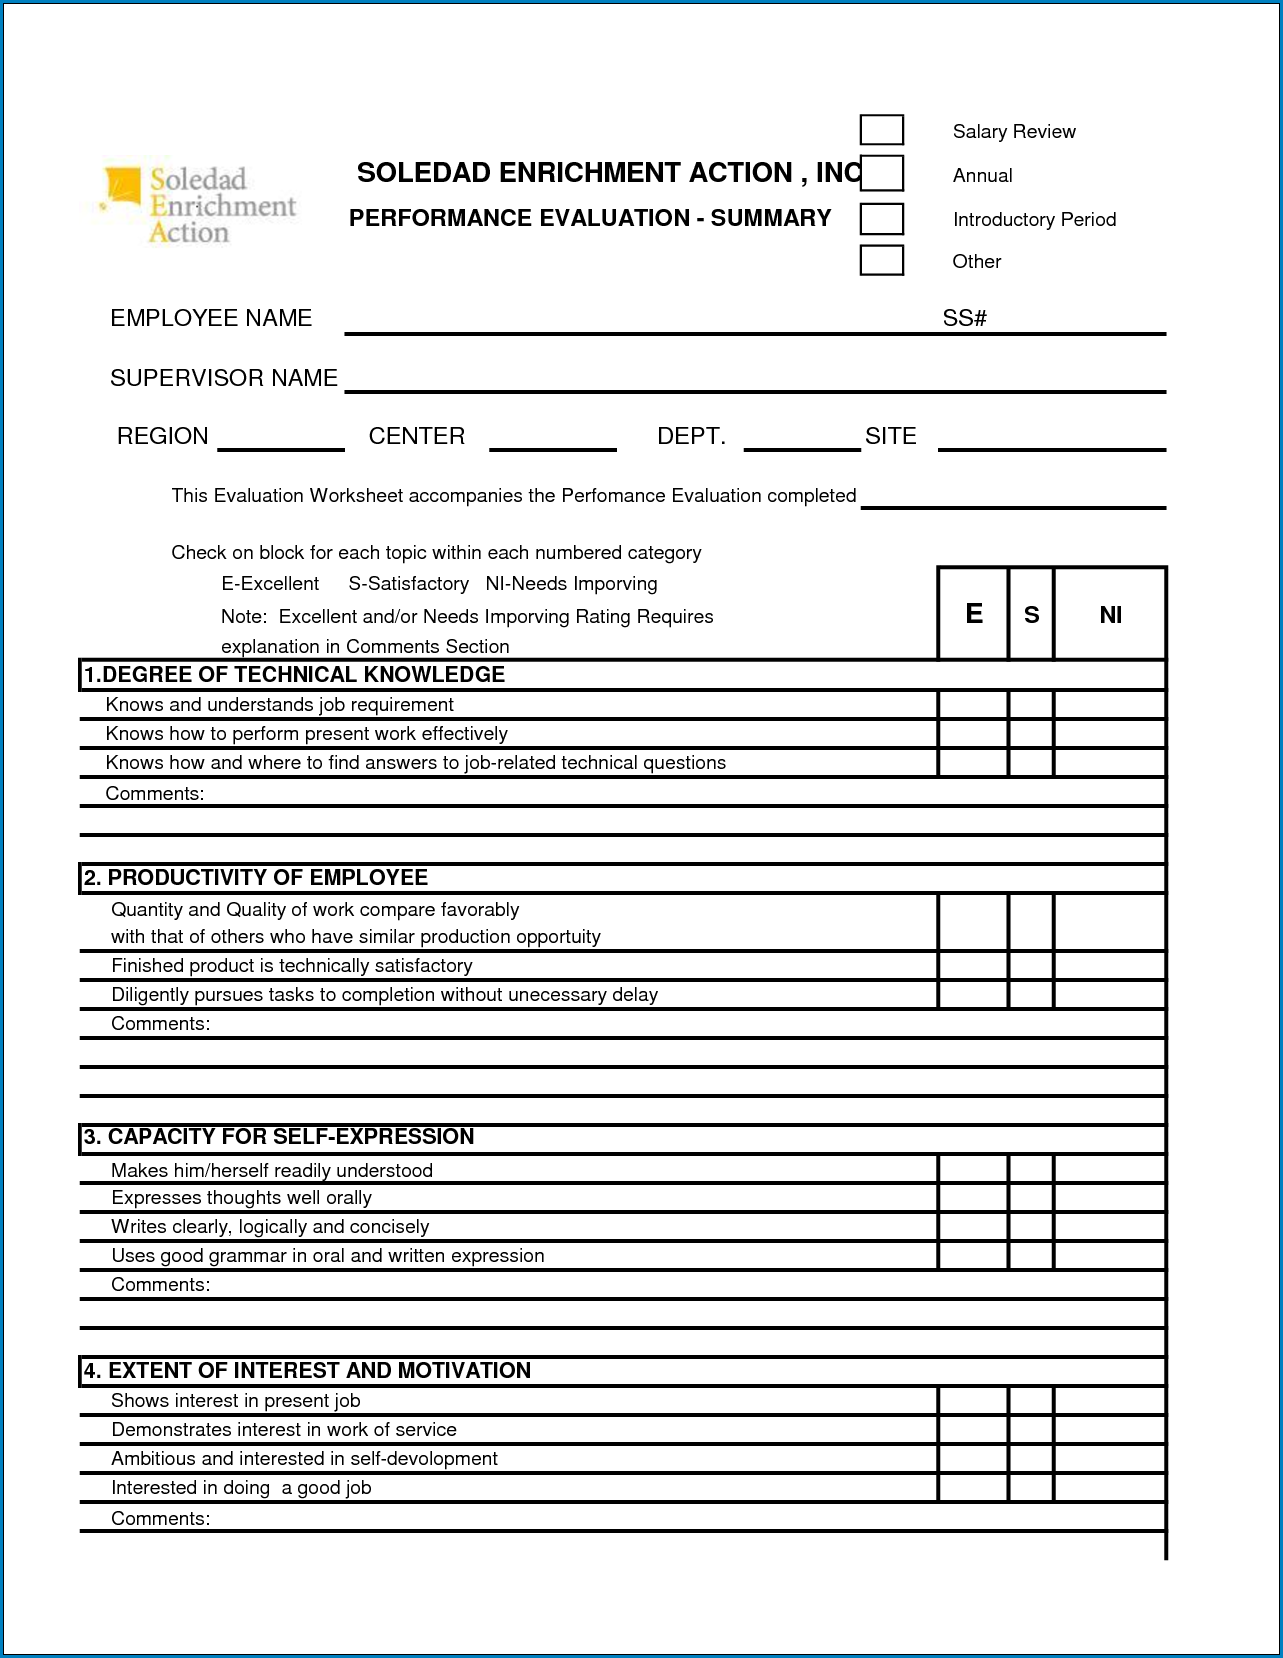 Example of Employee Performance Appraisal Form